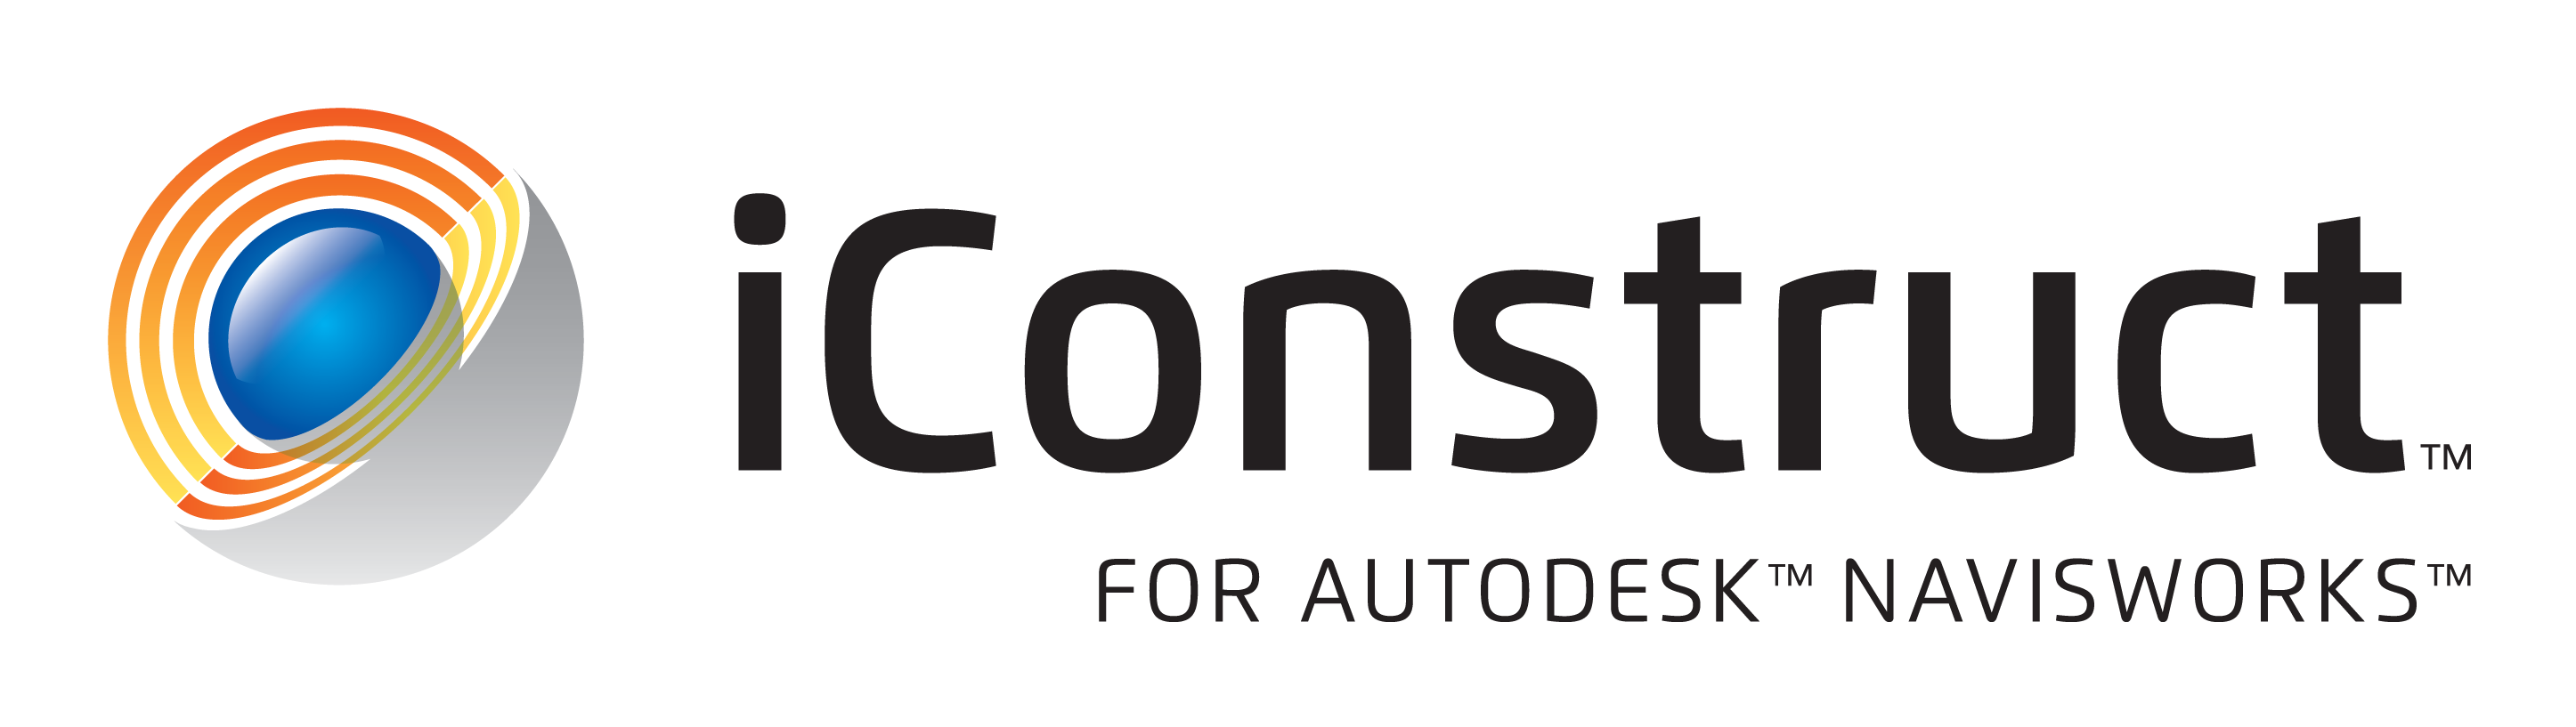 iconstruct_hires